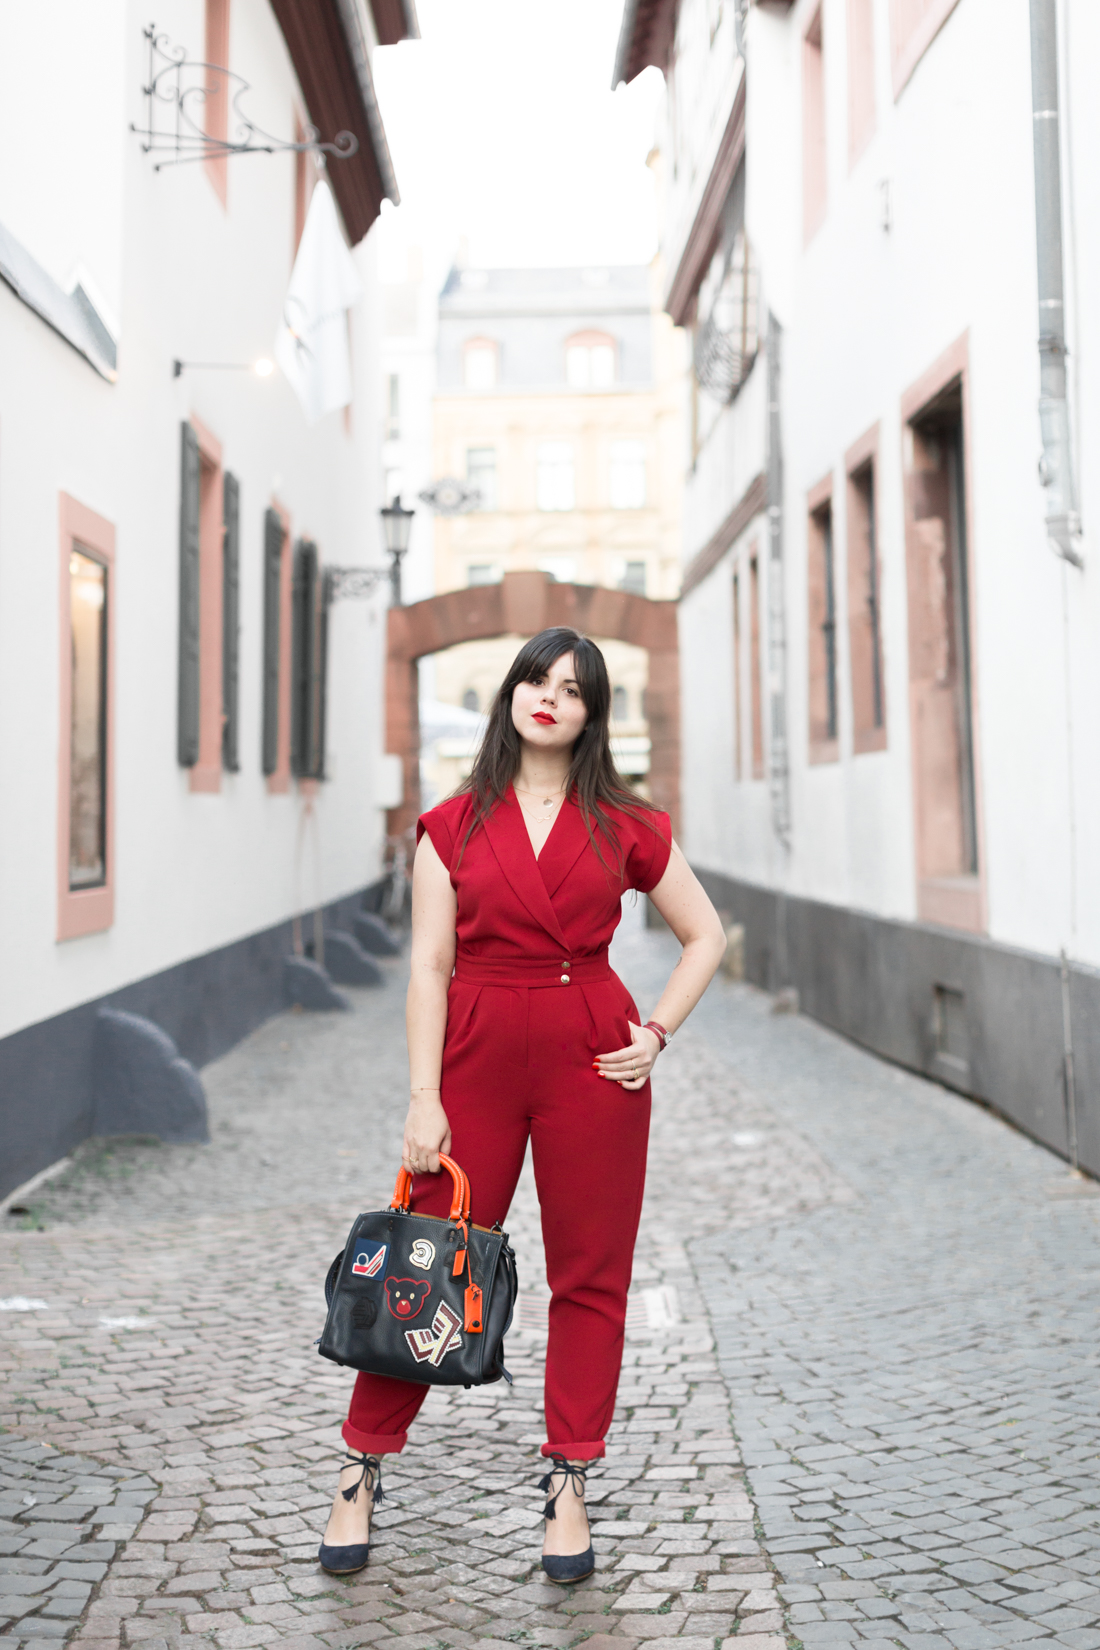 varsity-rogue-bag-coach-new-york-red-jumpsuit-valentina-sezane-marine-copyright-pauline-paulinefashionblog-com-2